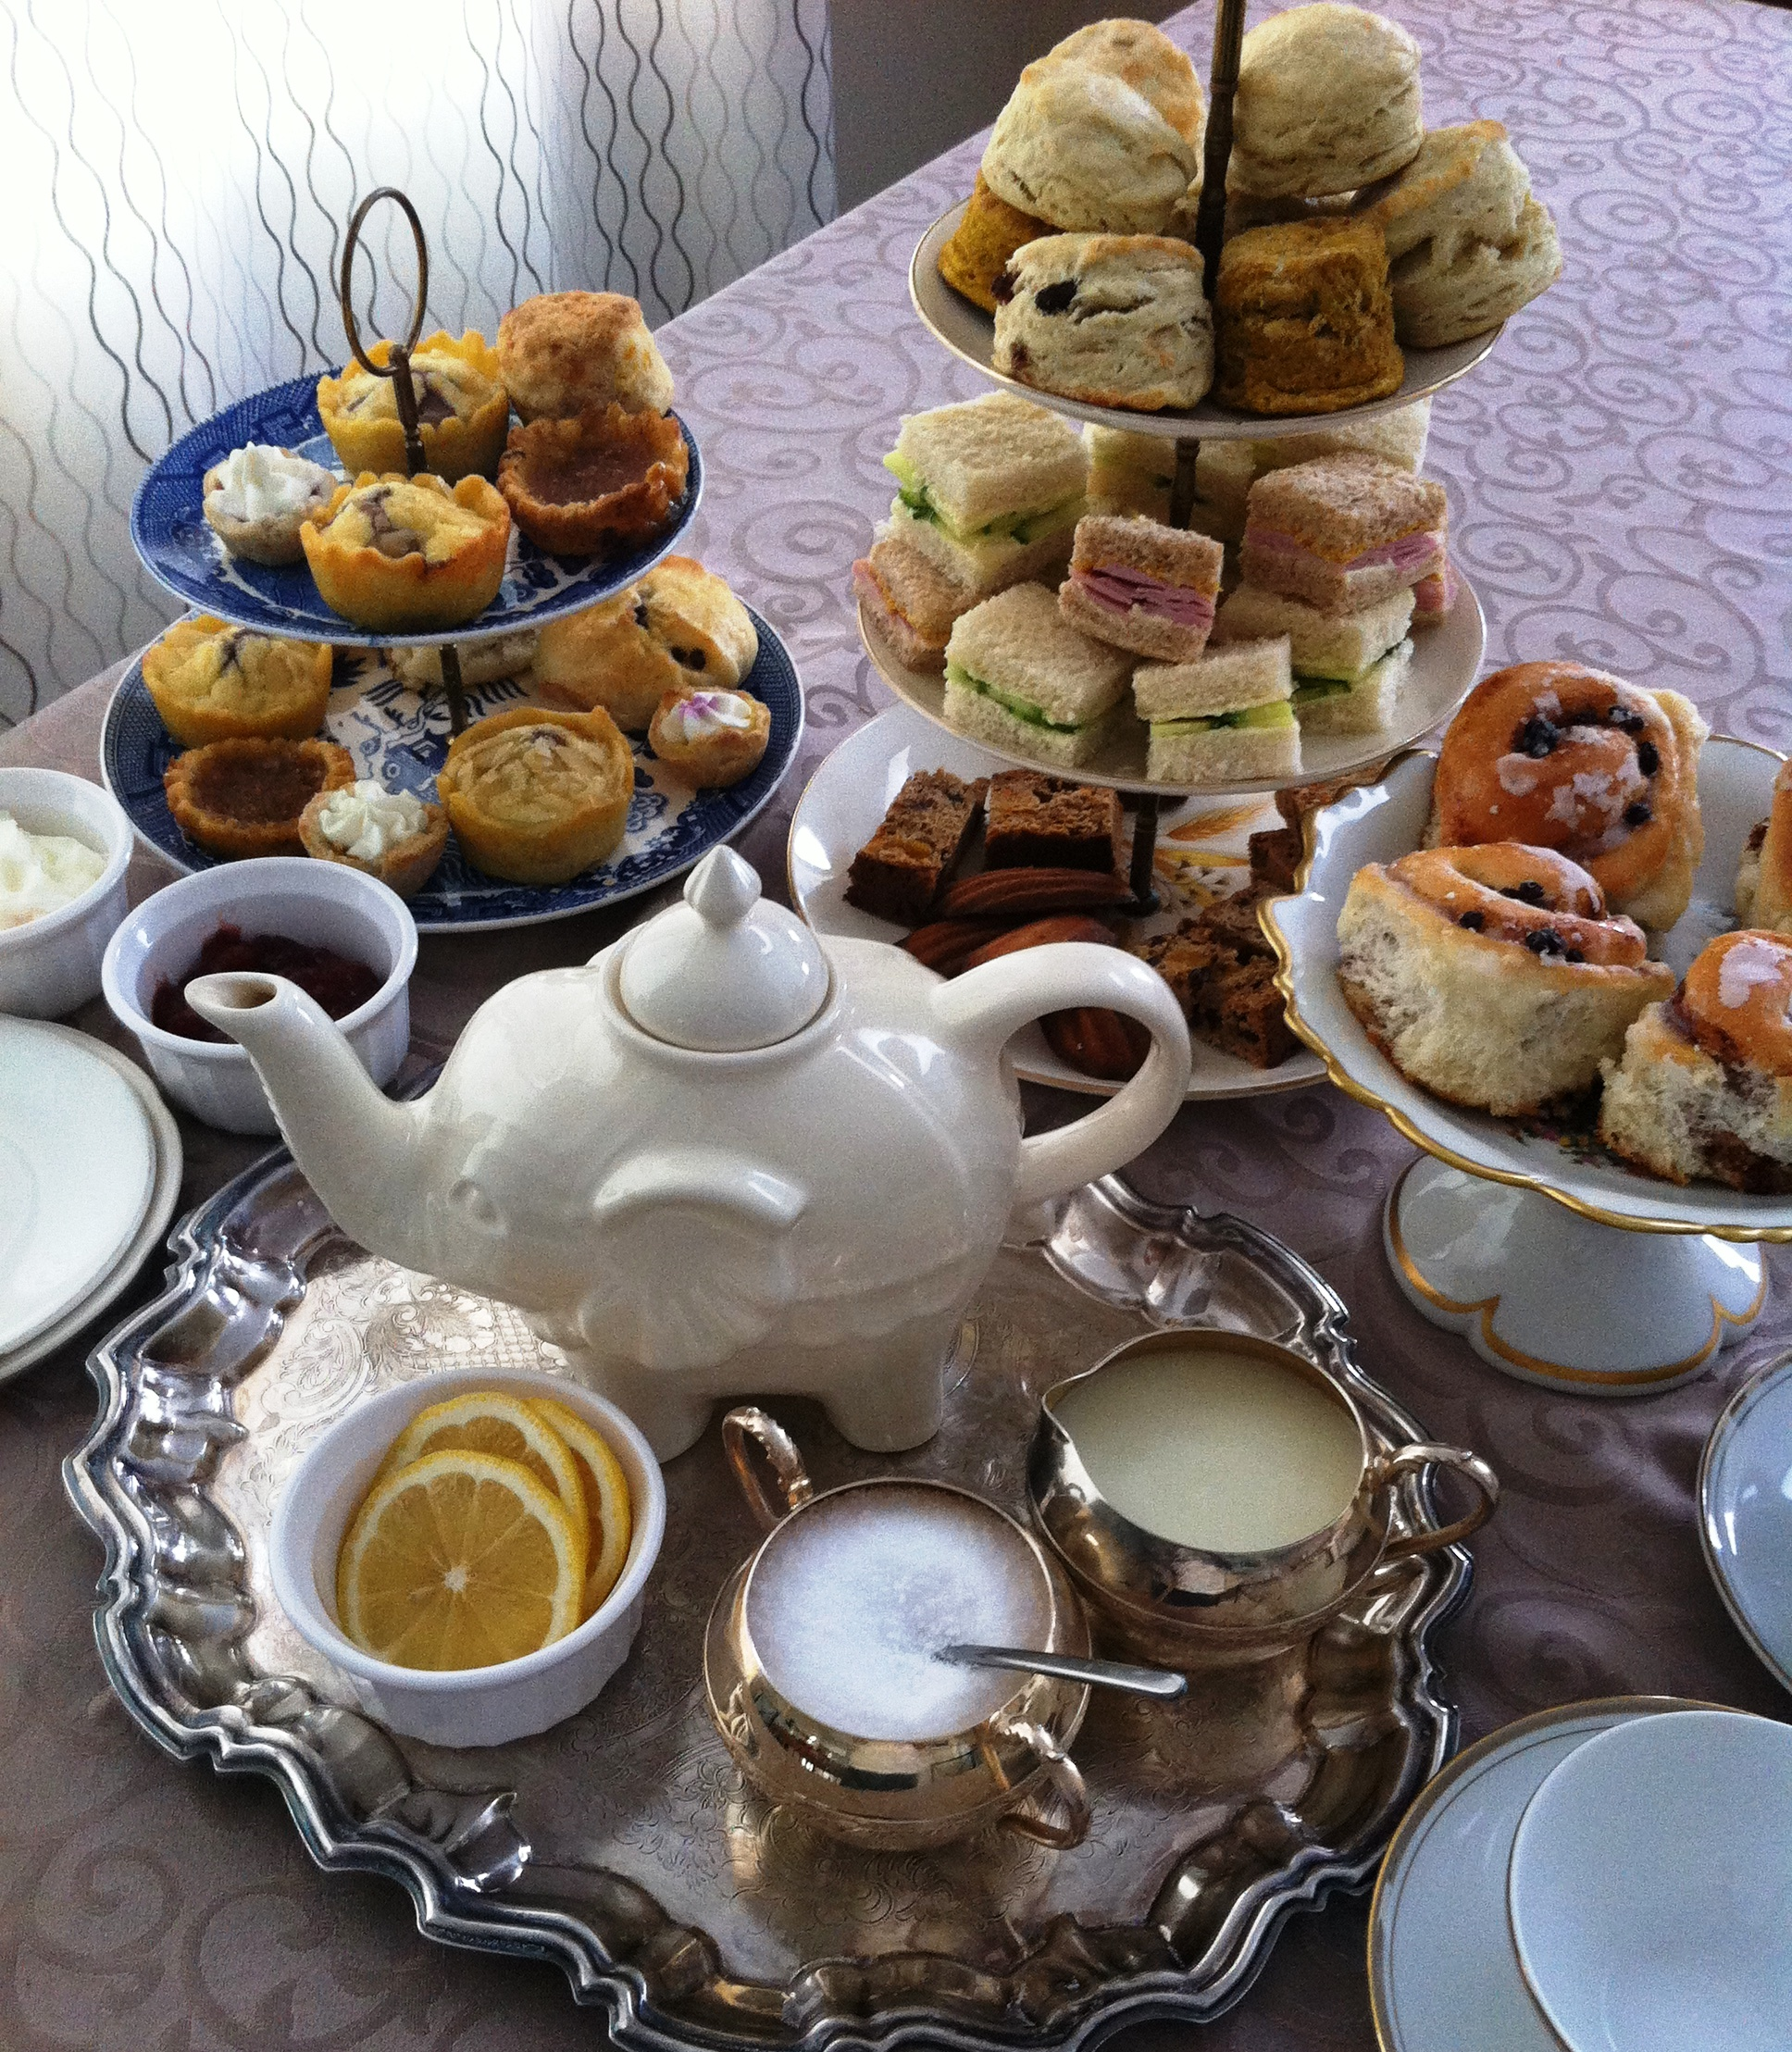 Mothers Day Tea Is Always A Great Last Minute Idea